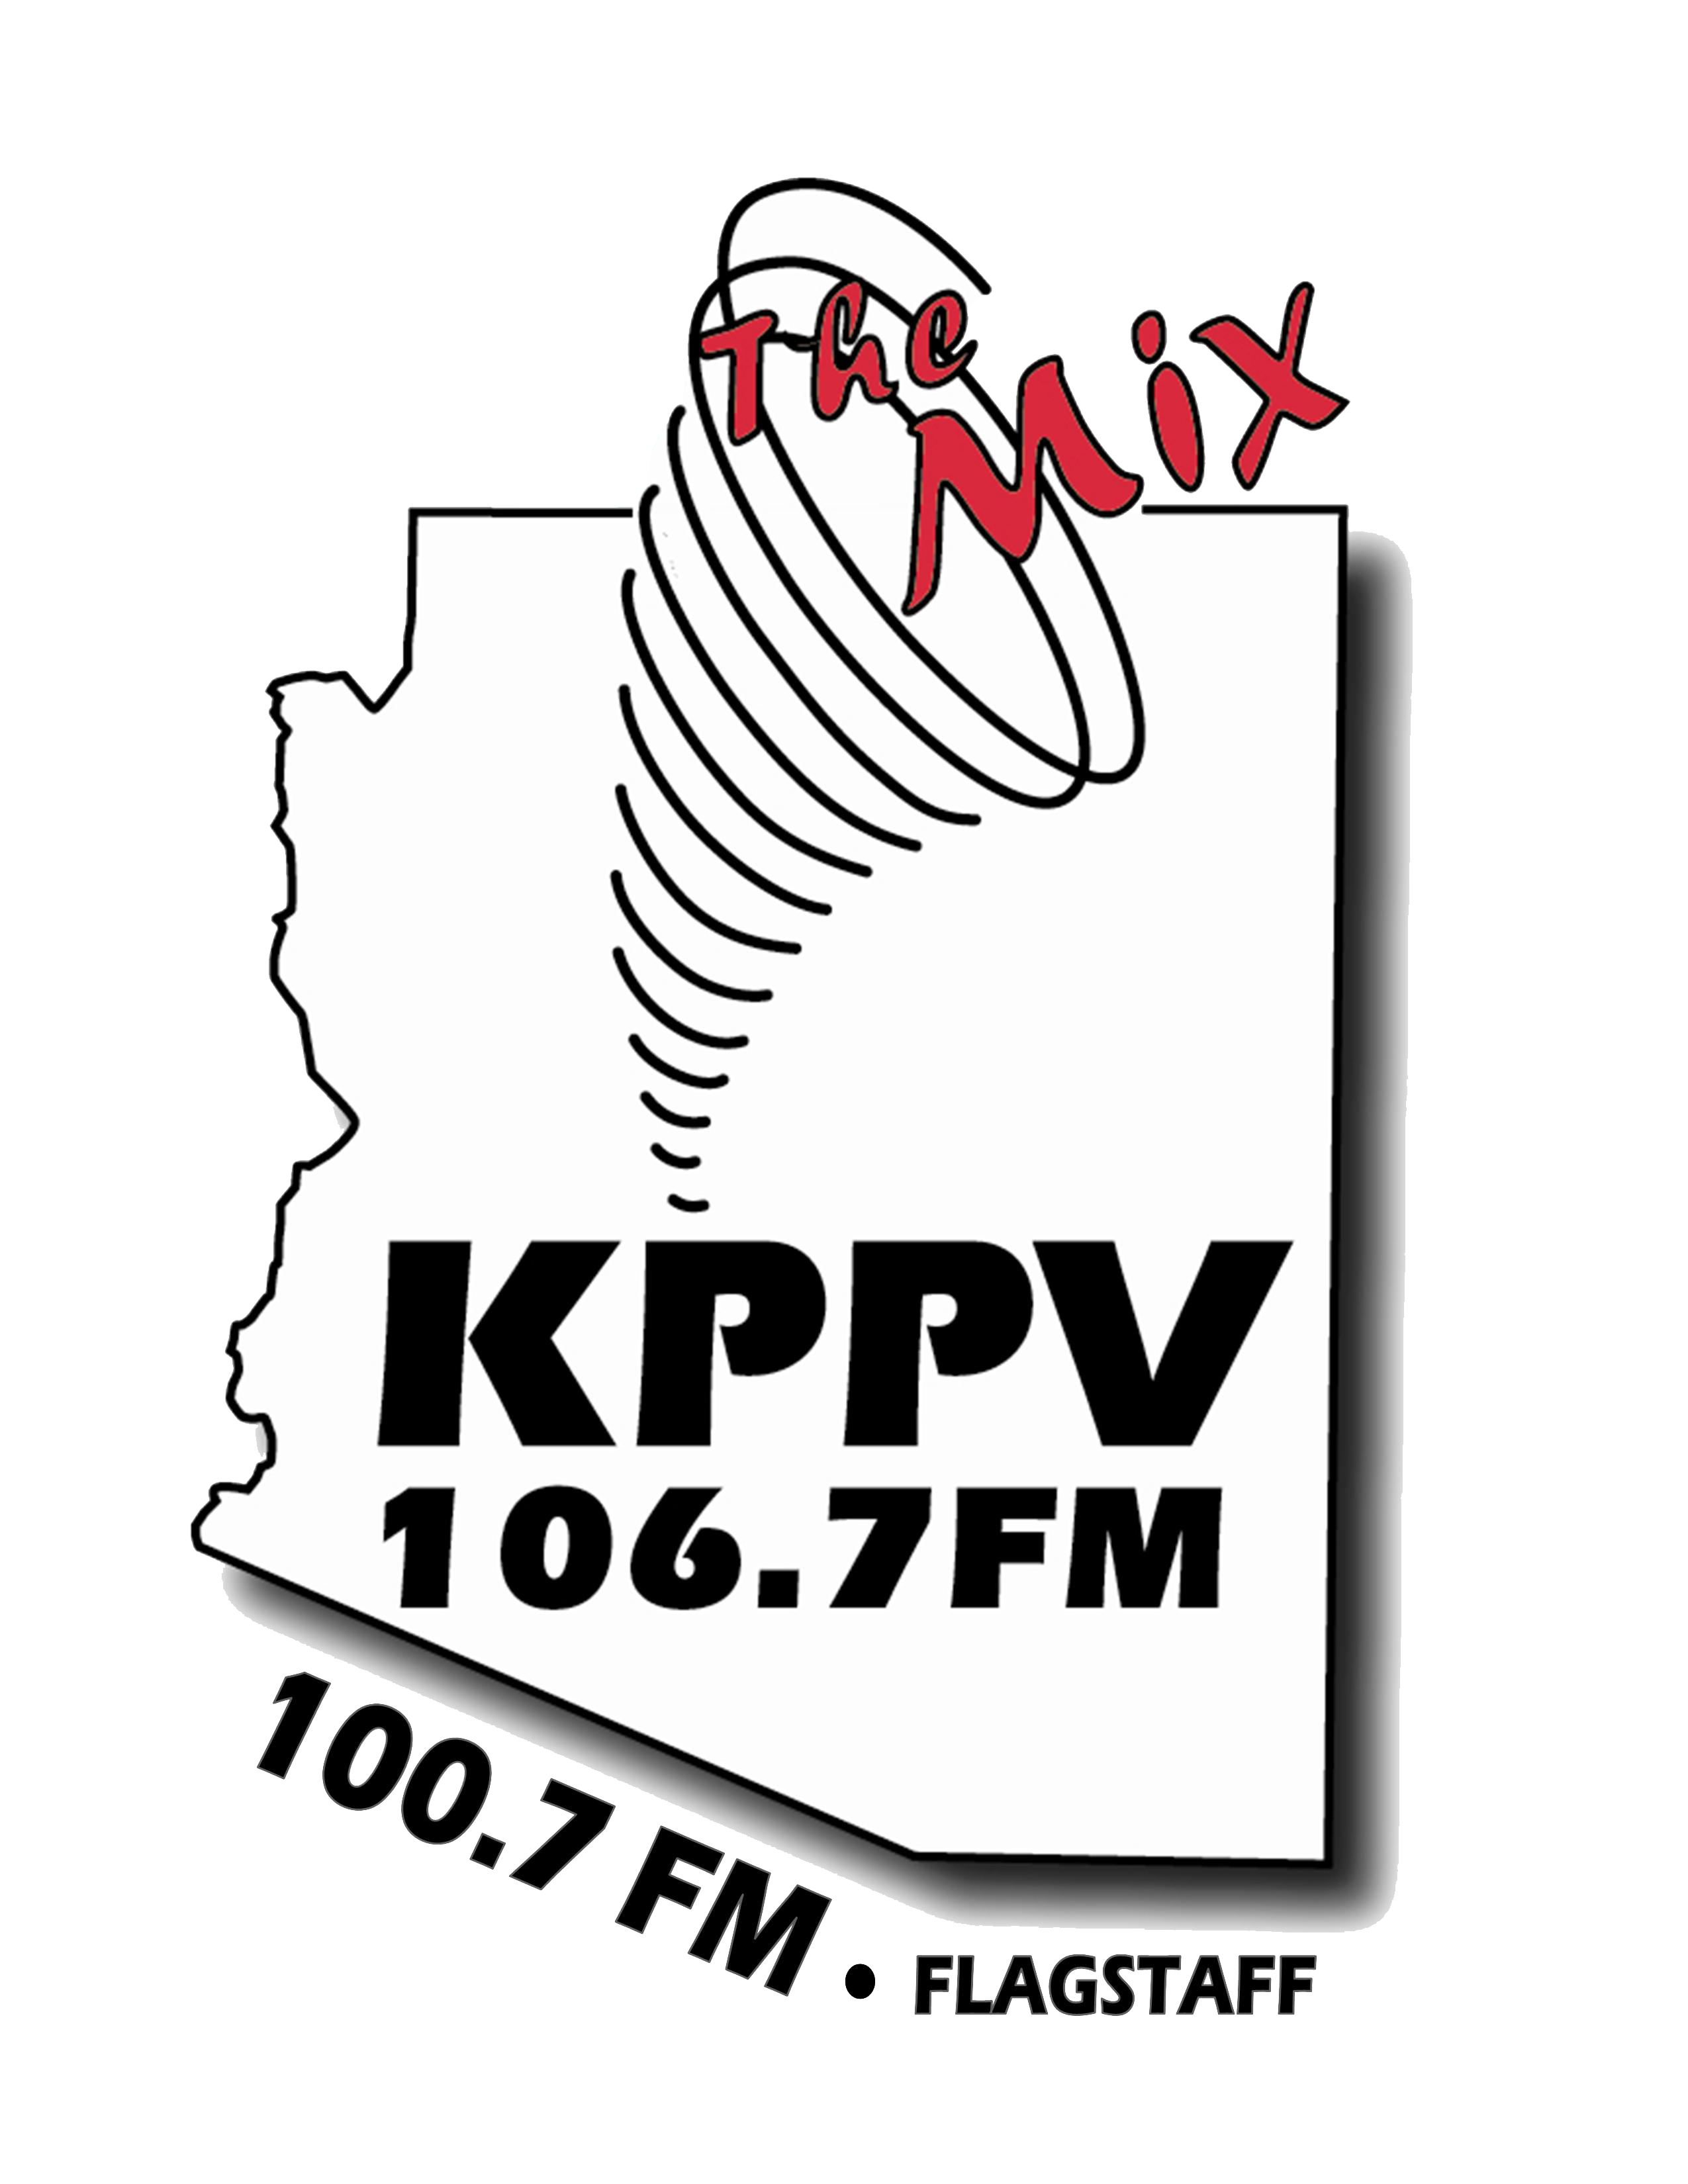 KPPV 106.7FM - THE MIX